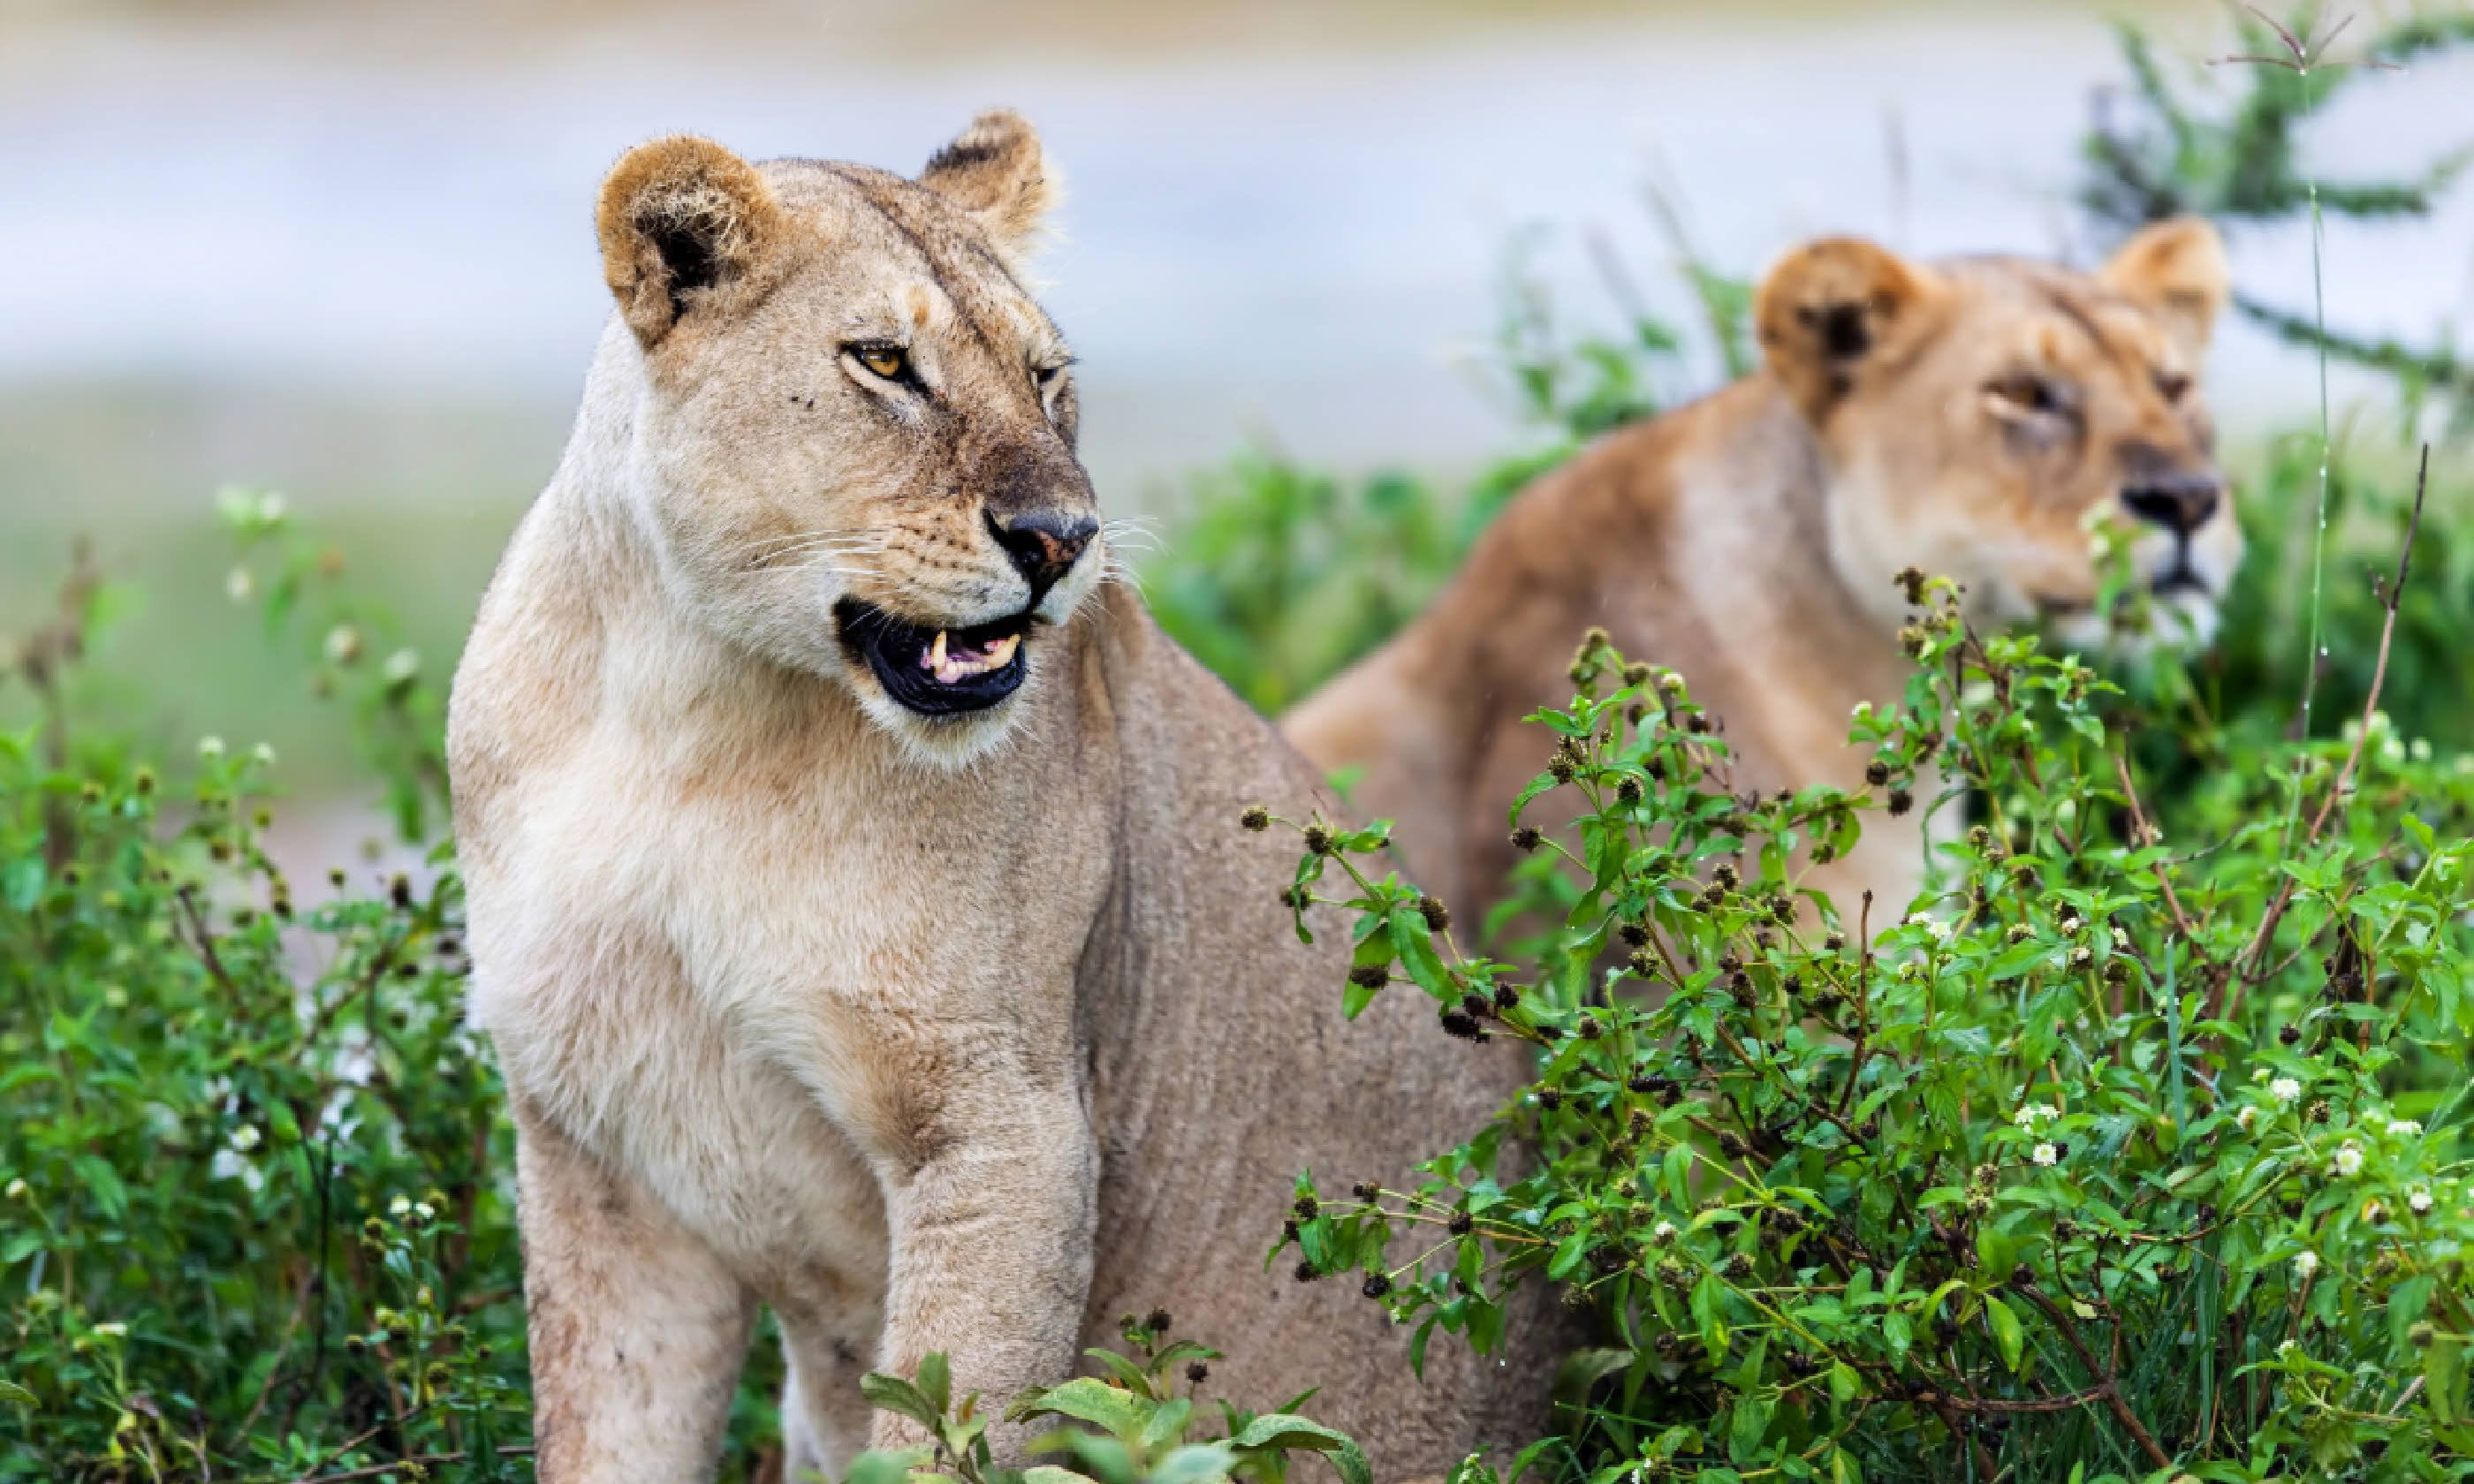 Lionesses in the rain, Serengeti (Shutterstock)